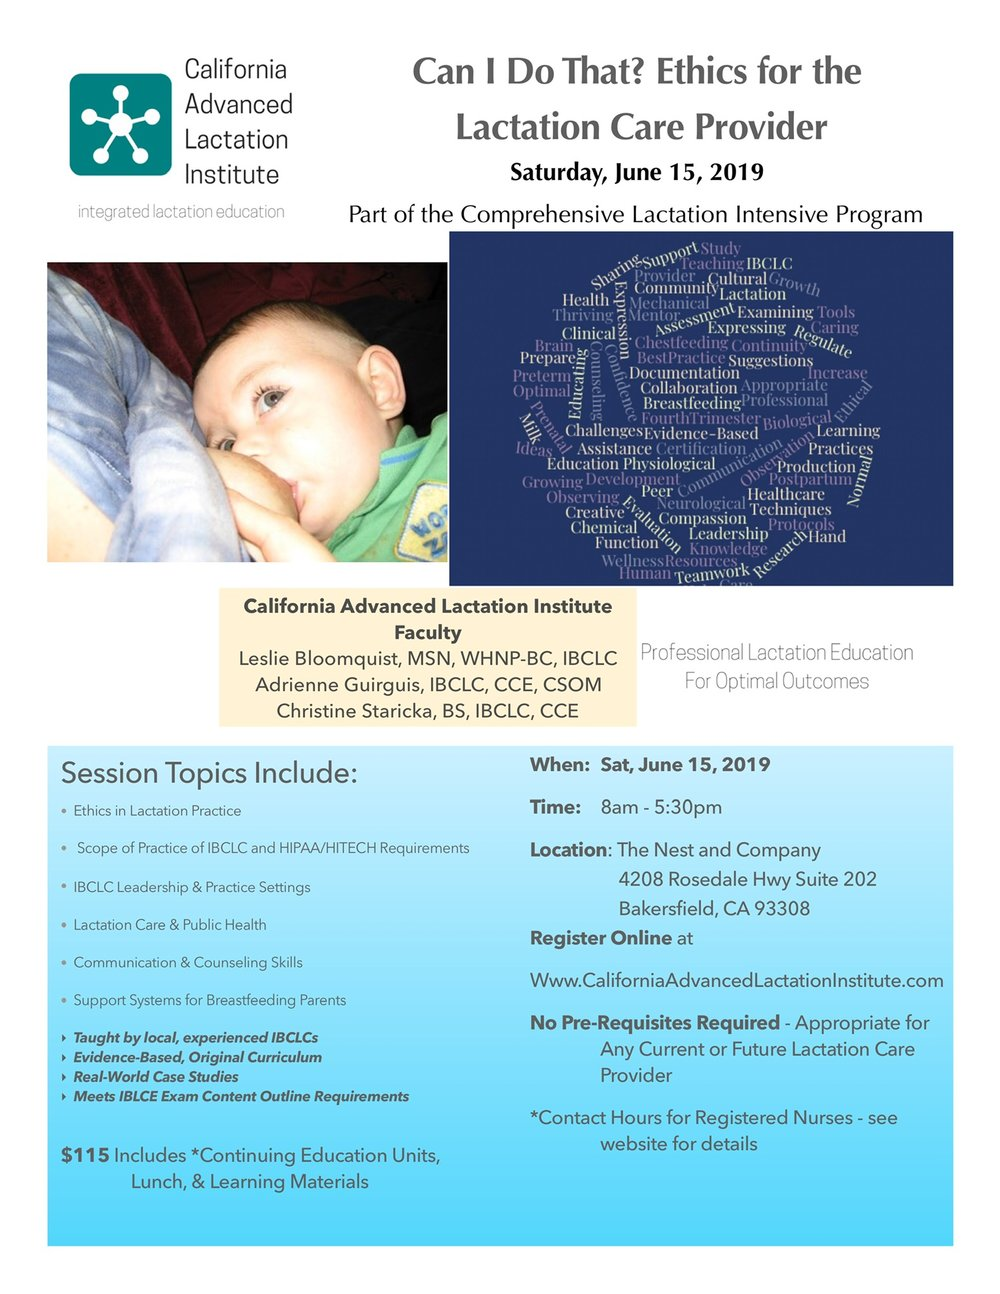 REGISTER HERE  https://form.jotform.com/90997534273166   California Advanced Lactation Institute is a Continuing Education Provider approved by the California Board of Registered Nursing, Provider Number 17133. This event is approved for 10 contact hours. Licensee must maintain certificate for a period of Four years.   Refunds/Cancellation Policy as of April 1, 2019   Written cancellations received two weeks prior to the event will be granted subject to a $10 fee. No refunds will be granted after this date.